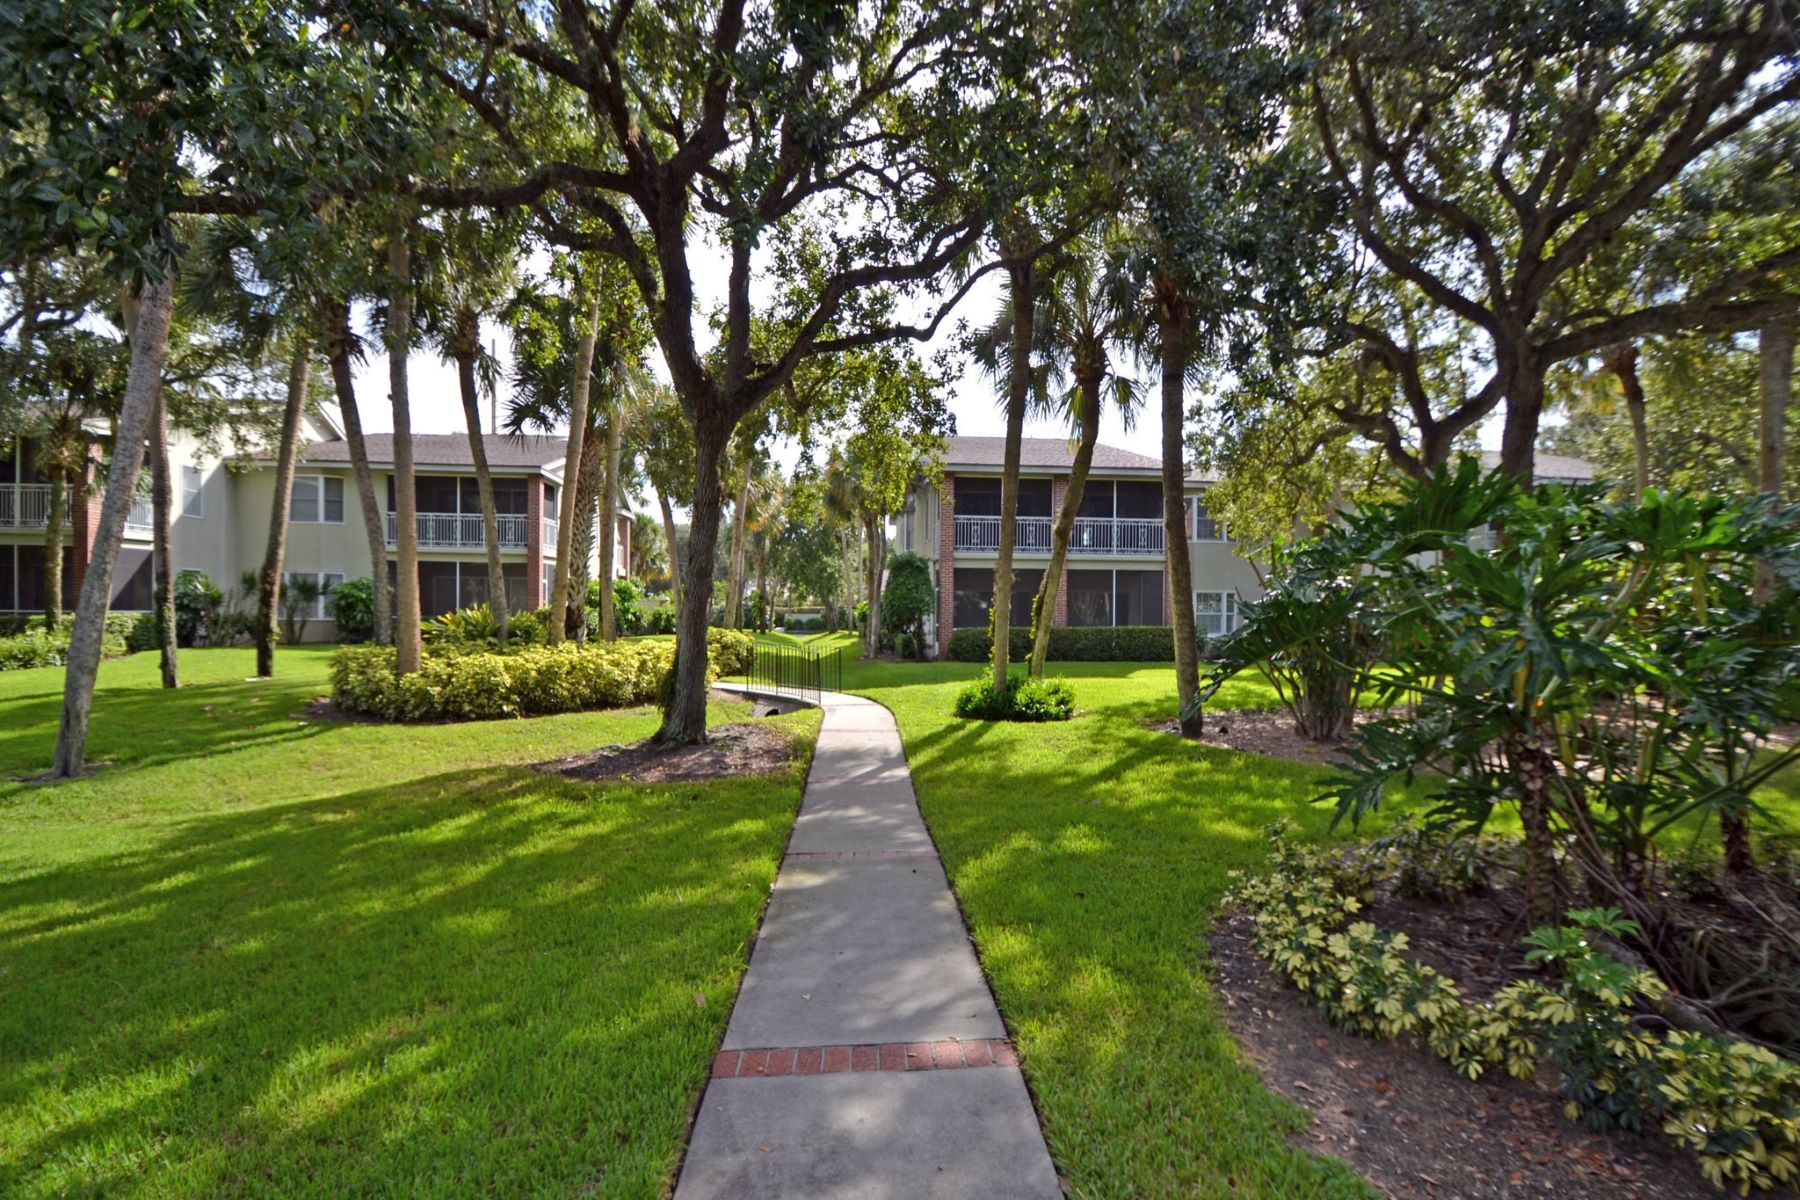 109 W Park Shores Circle, #30, Indian River Shores, FL 109 W Park Shores Circle 30 Indian River Shores, Florida 32963 Förenta staterna